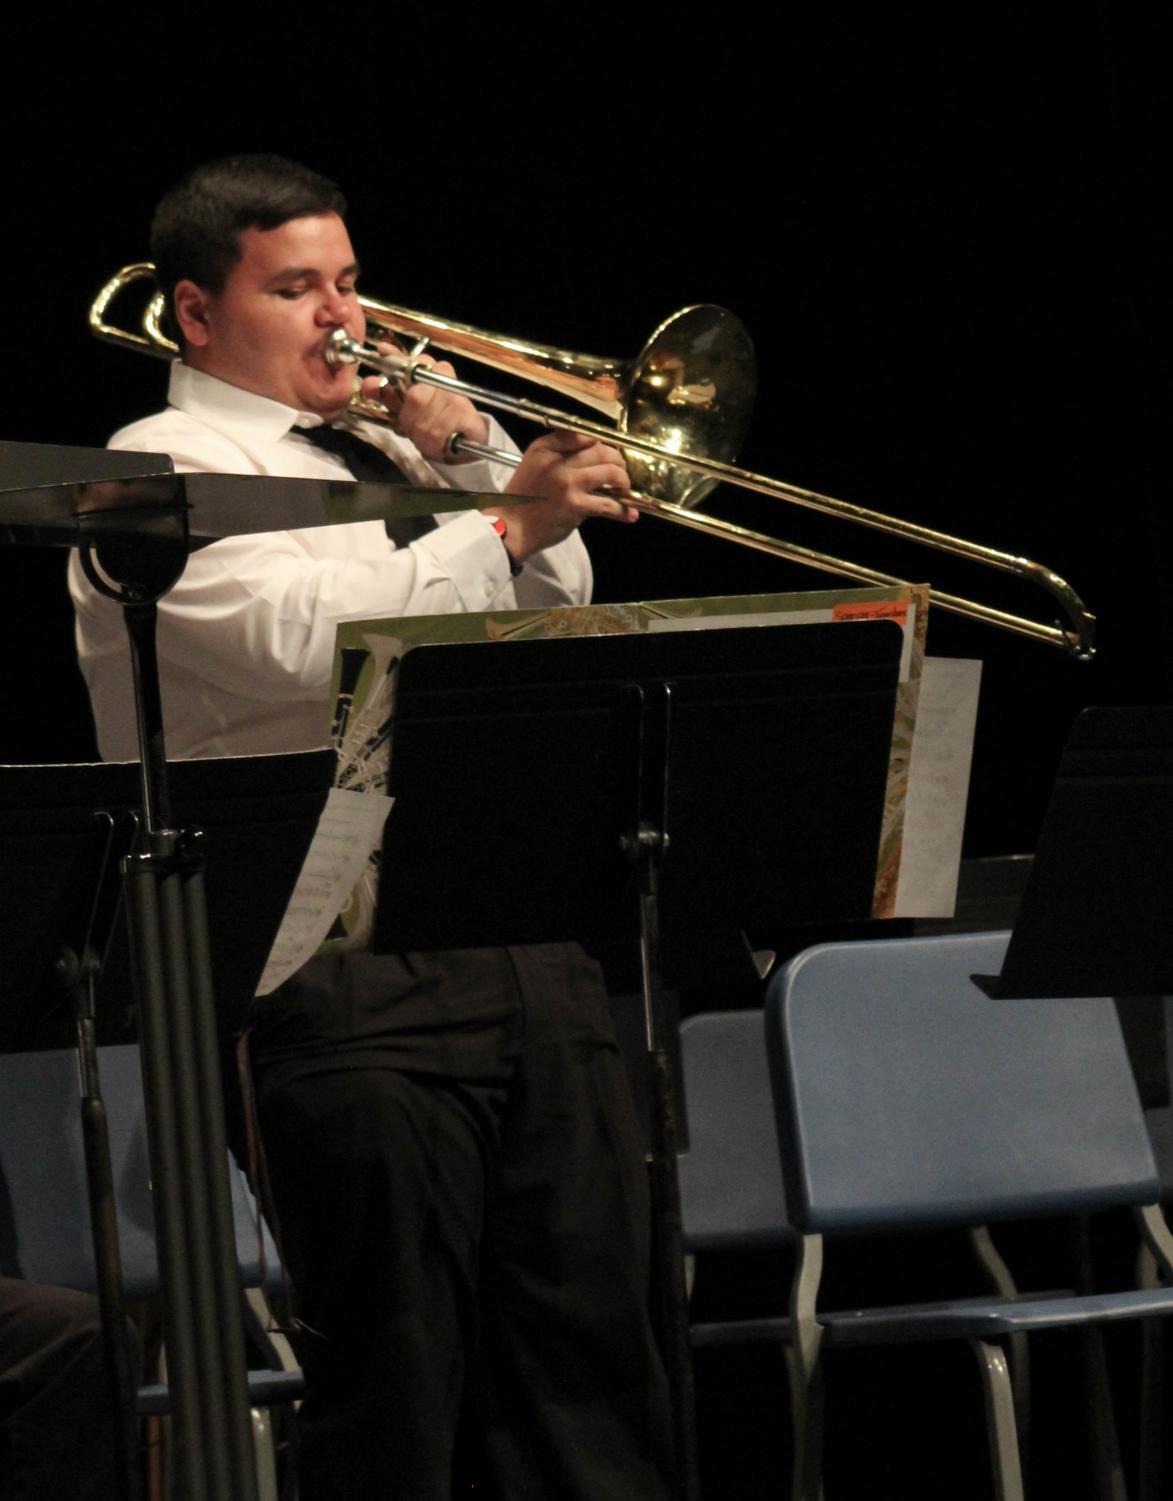 Iola+High+School+Student+Spencer+Ames+was+featured+during+Allen%27s+Jazz+Band+performance.